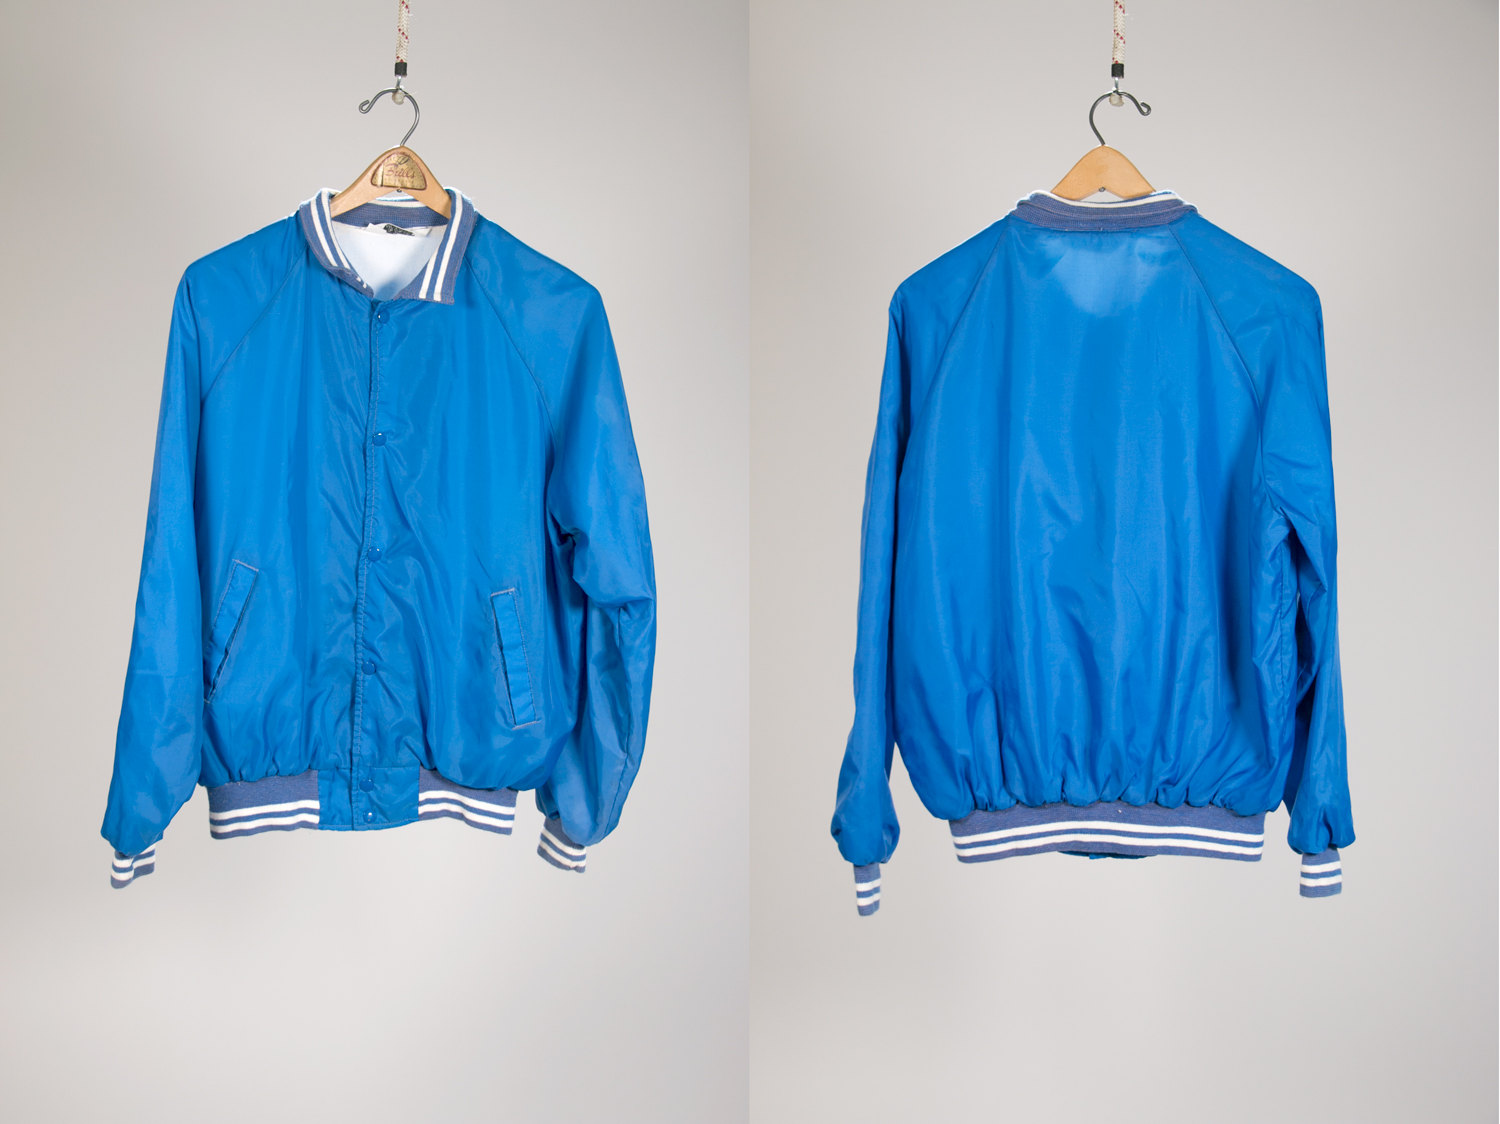 Vintage 1970's Blue & White Trucker Jacket / Club Jacket with soft lining - Cool! - Men's Large 42-44 - Retro, Indie, Hipster